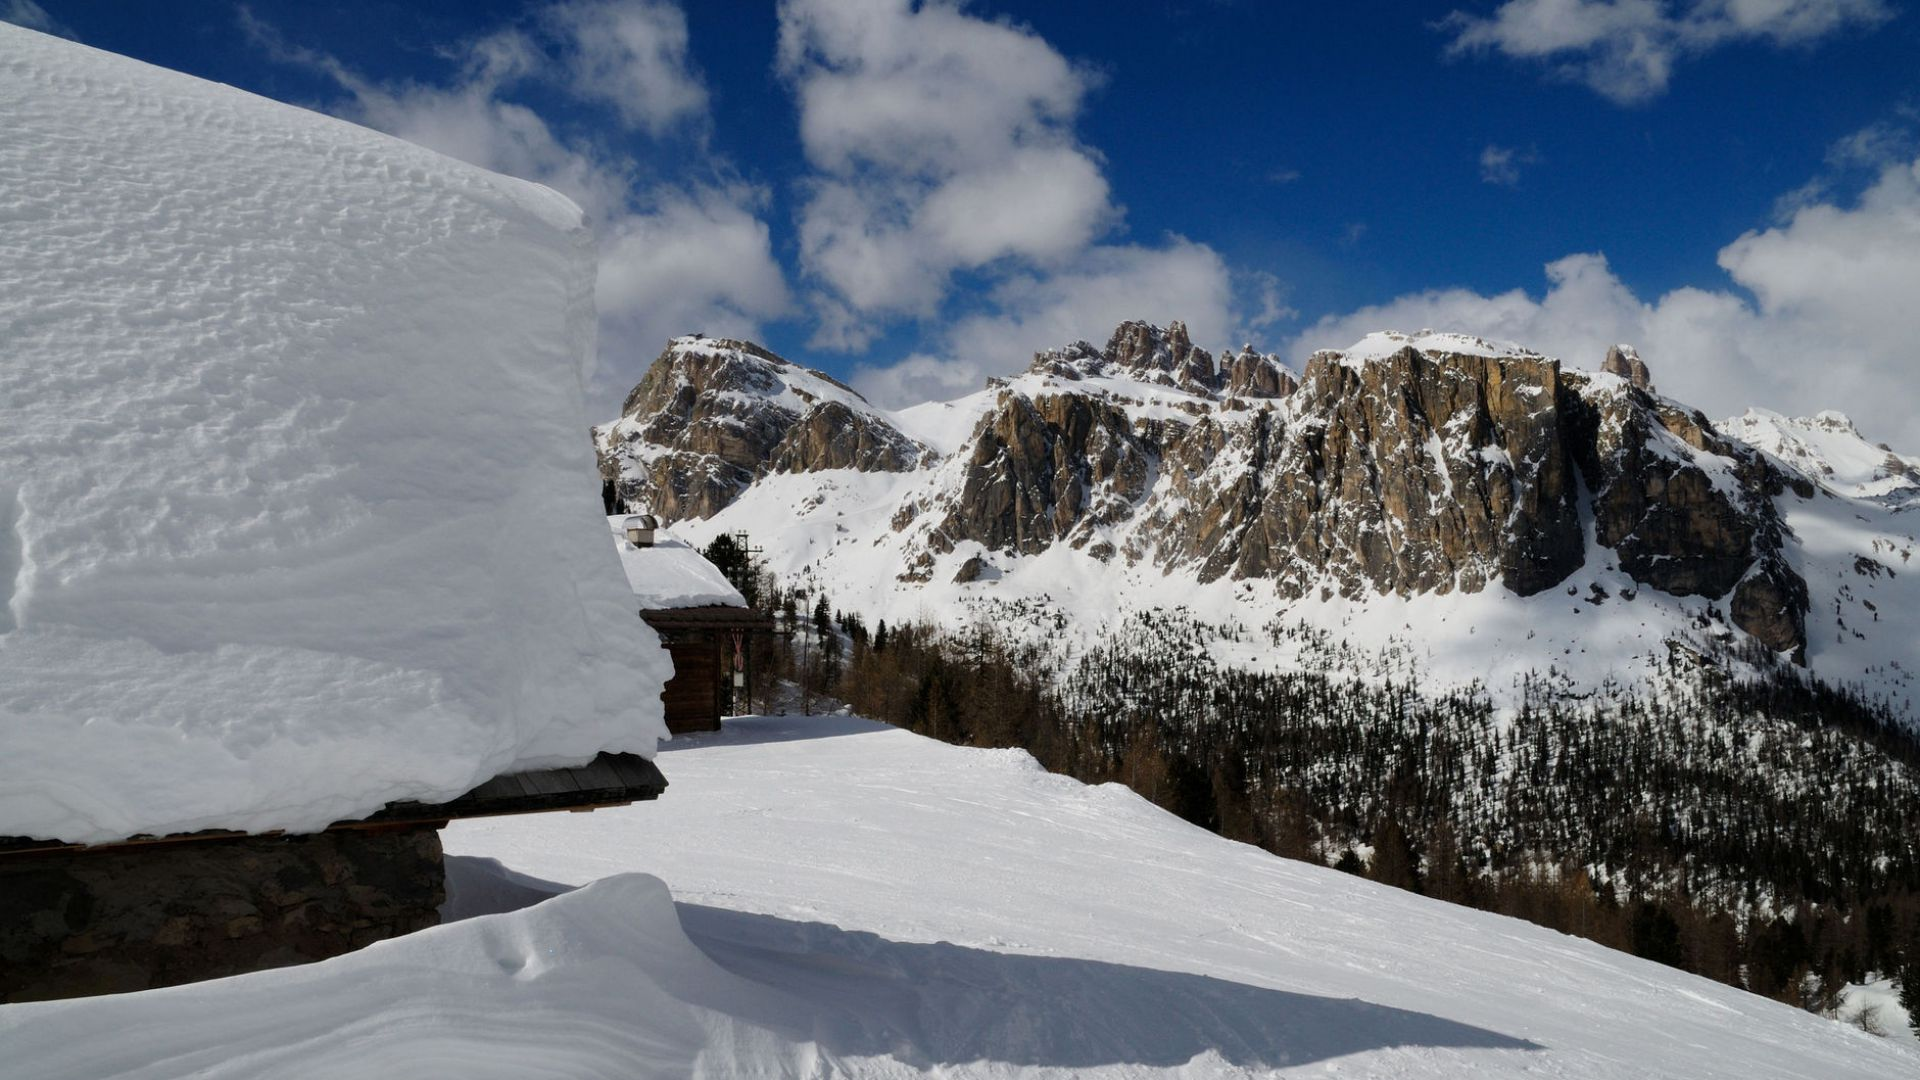 Image: San Cassiano and Alta Badia